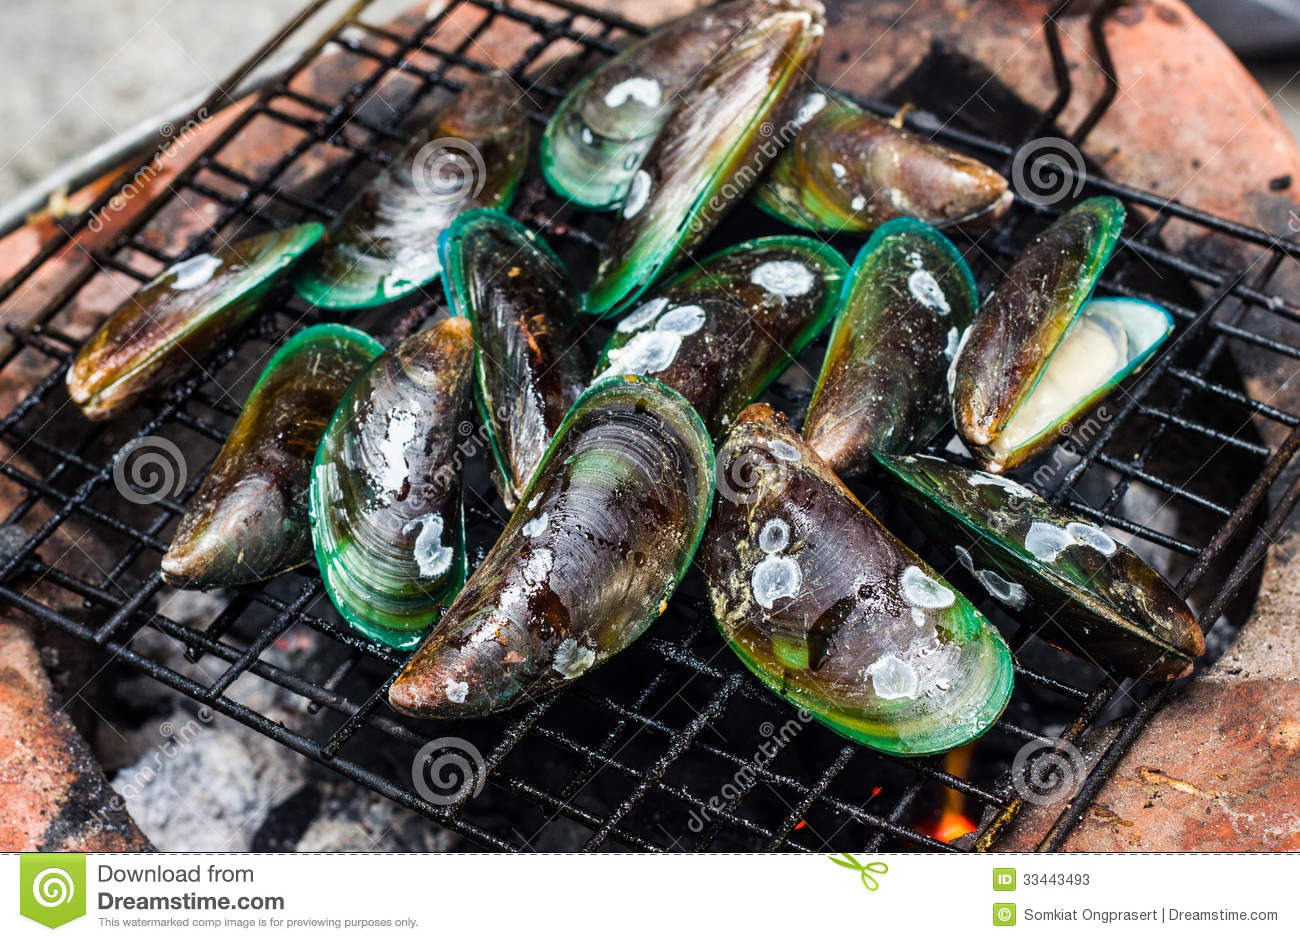 how to prepare mussels to eat